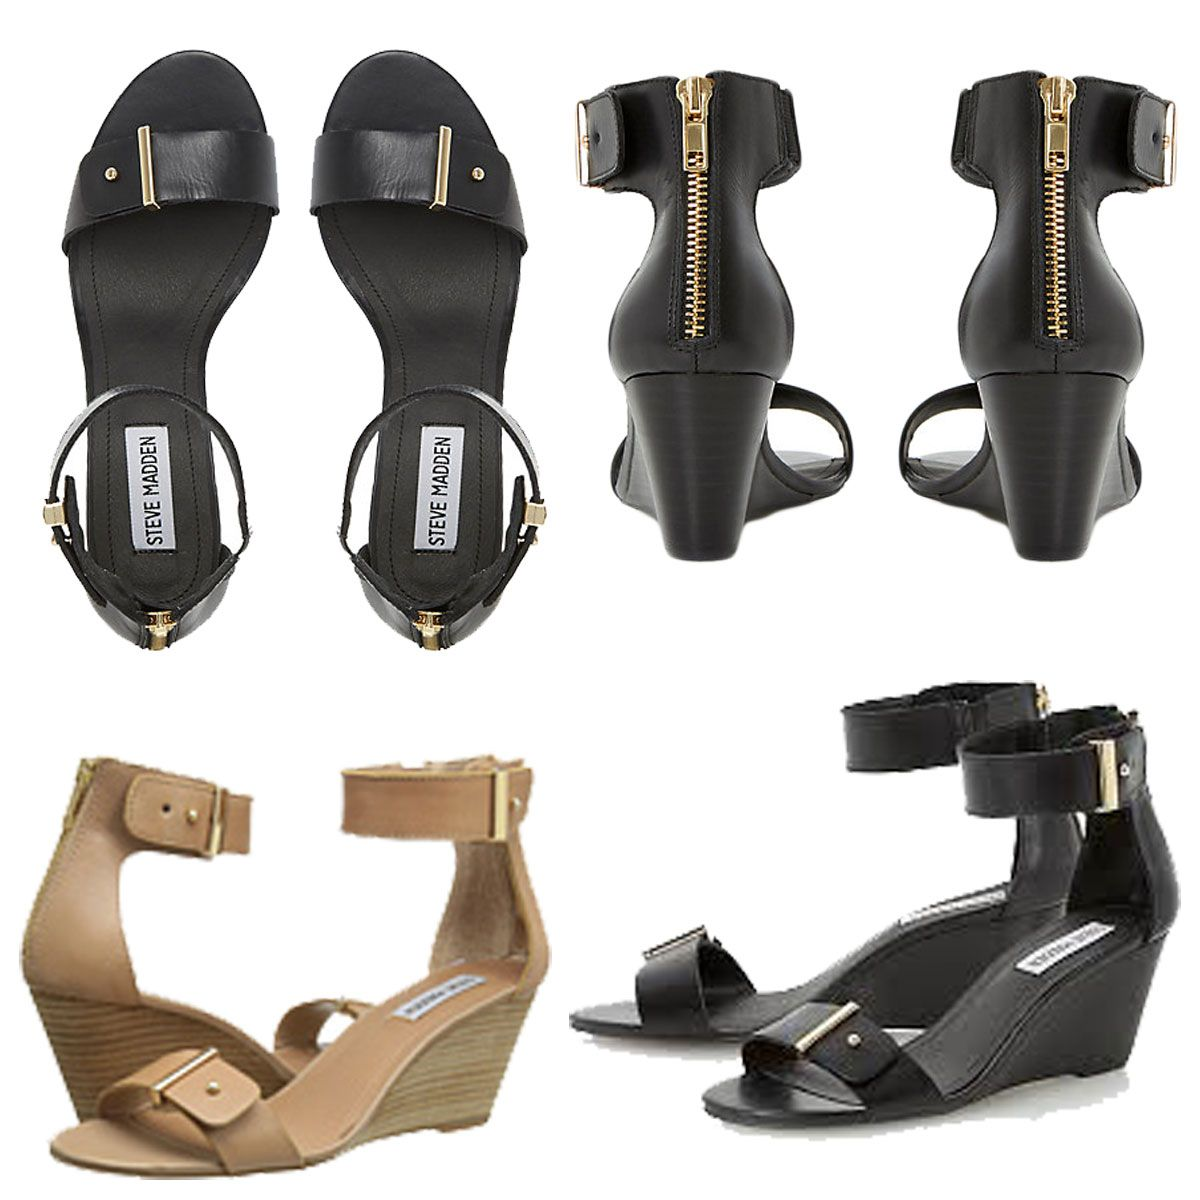 bfb6b839039 The Narissaa wedge sandal by Steve Madden provides endless style and  versatility.